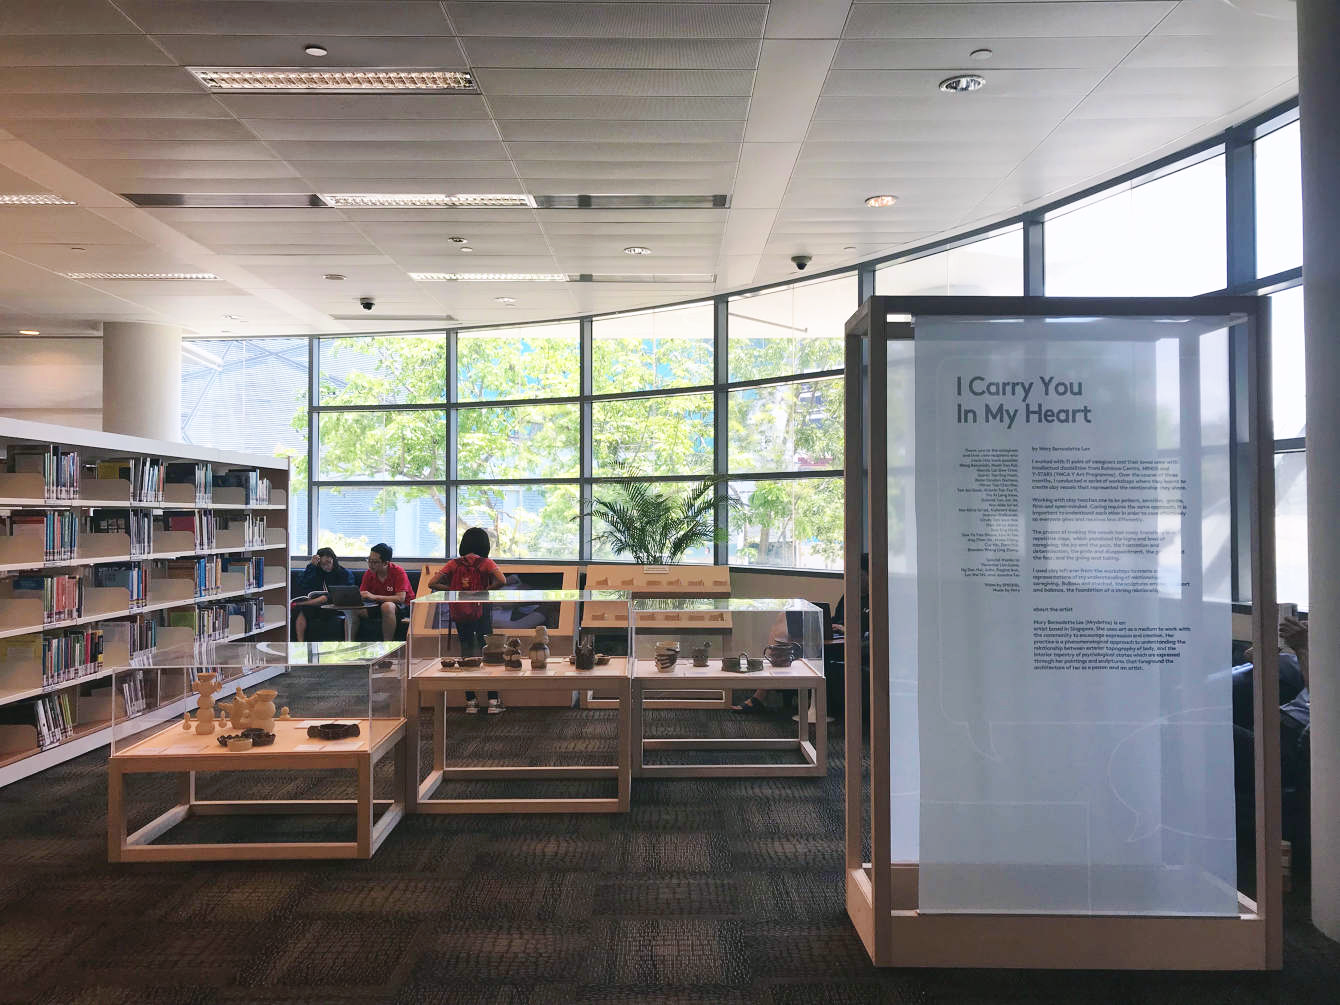 I Carry You In My Heart , Mary Bernadette Lee 2018, Installation View at Jurong Regional Library